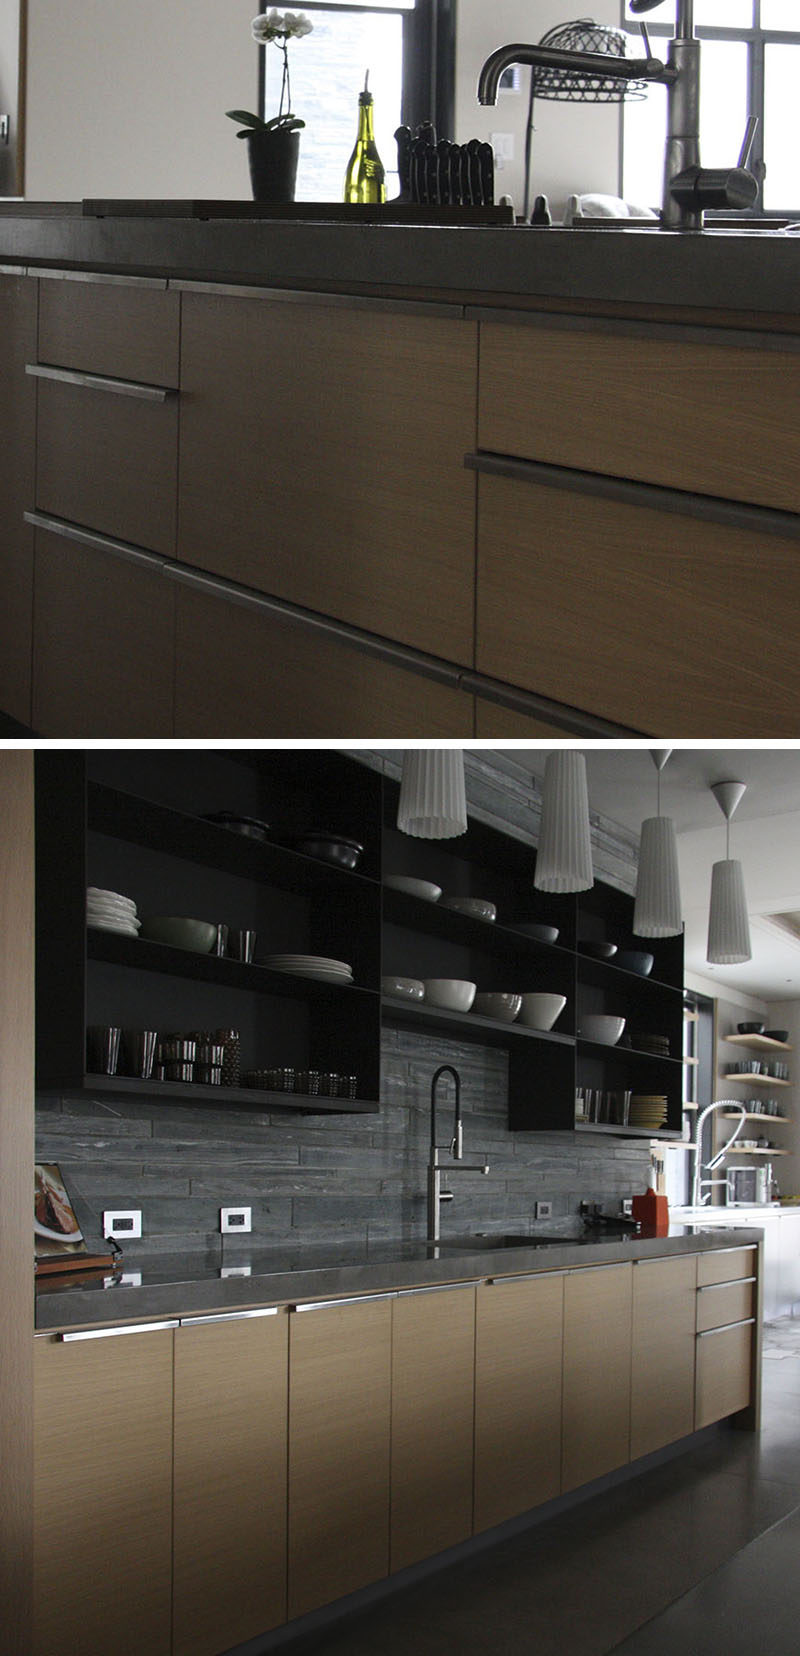 8 Kitchen Cabinet Hardware Ideas // Full Length Pulls